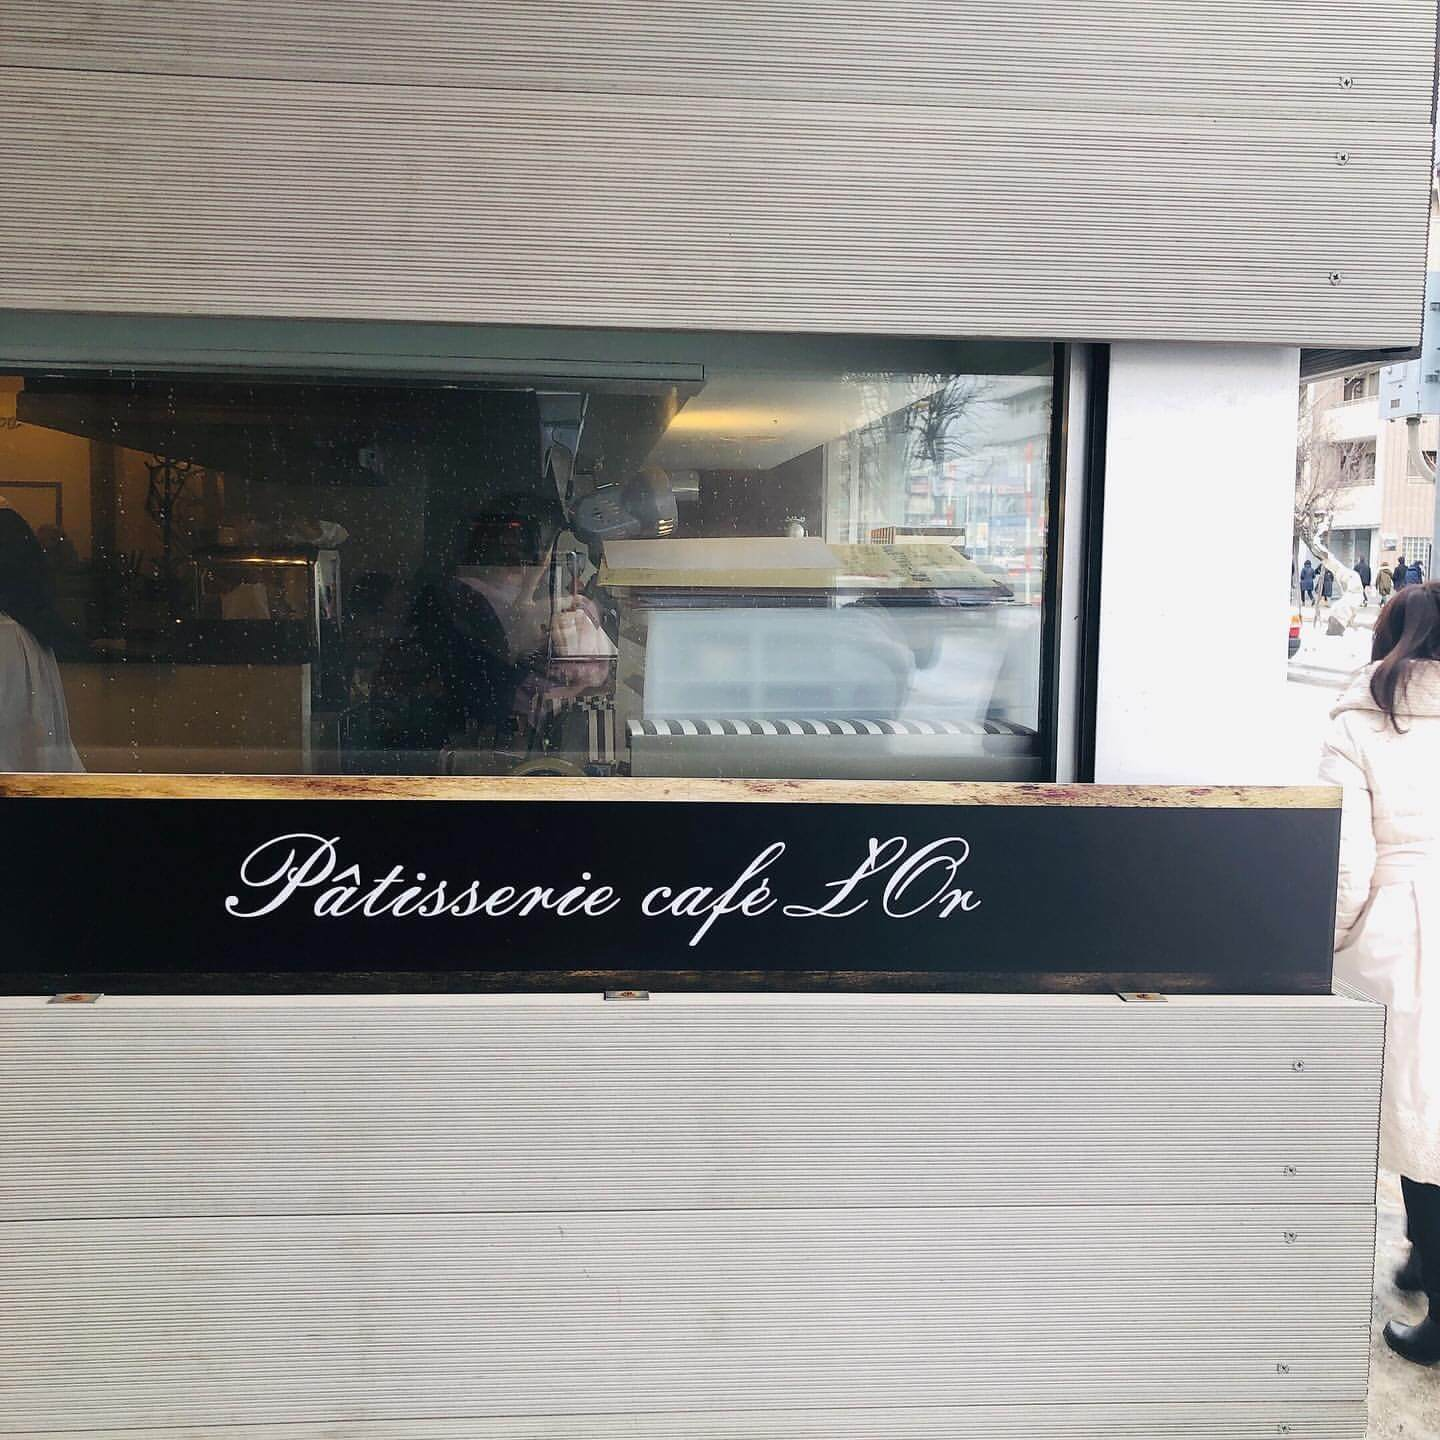 Patisserie cafe L'Or(パティスリーカフェ ロール)の看板